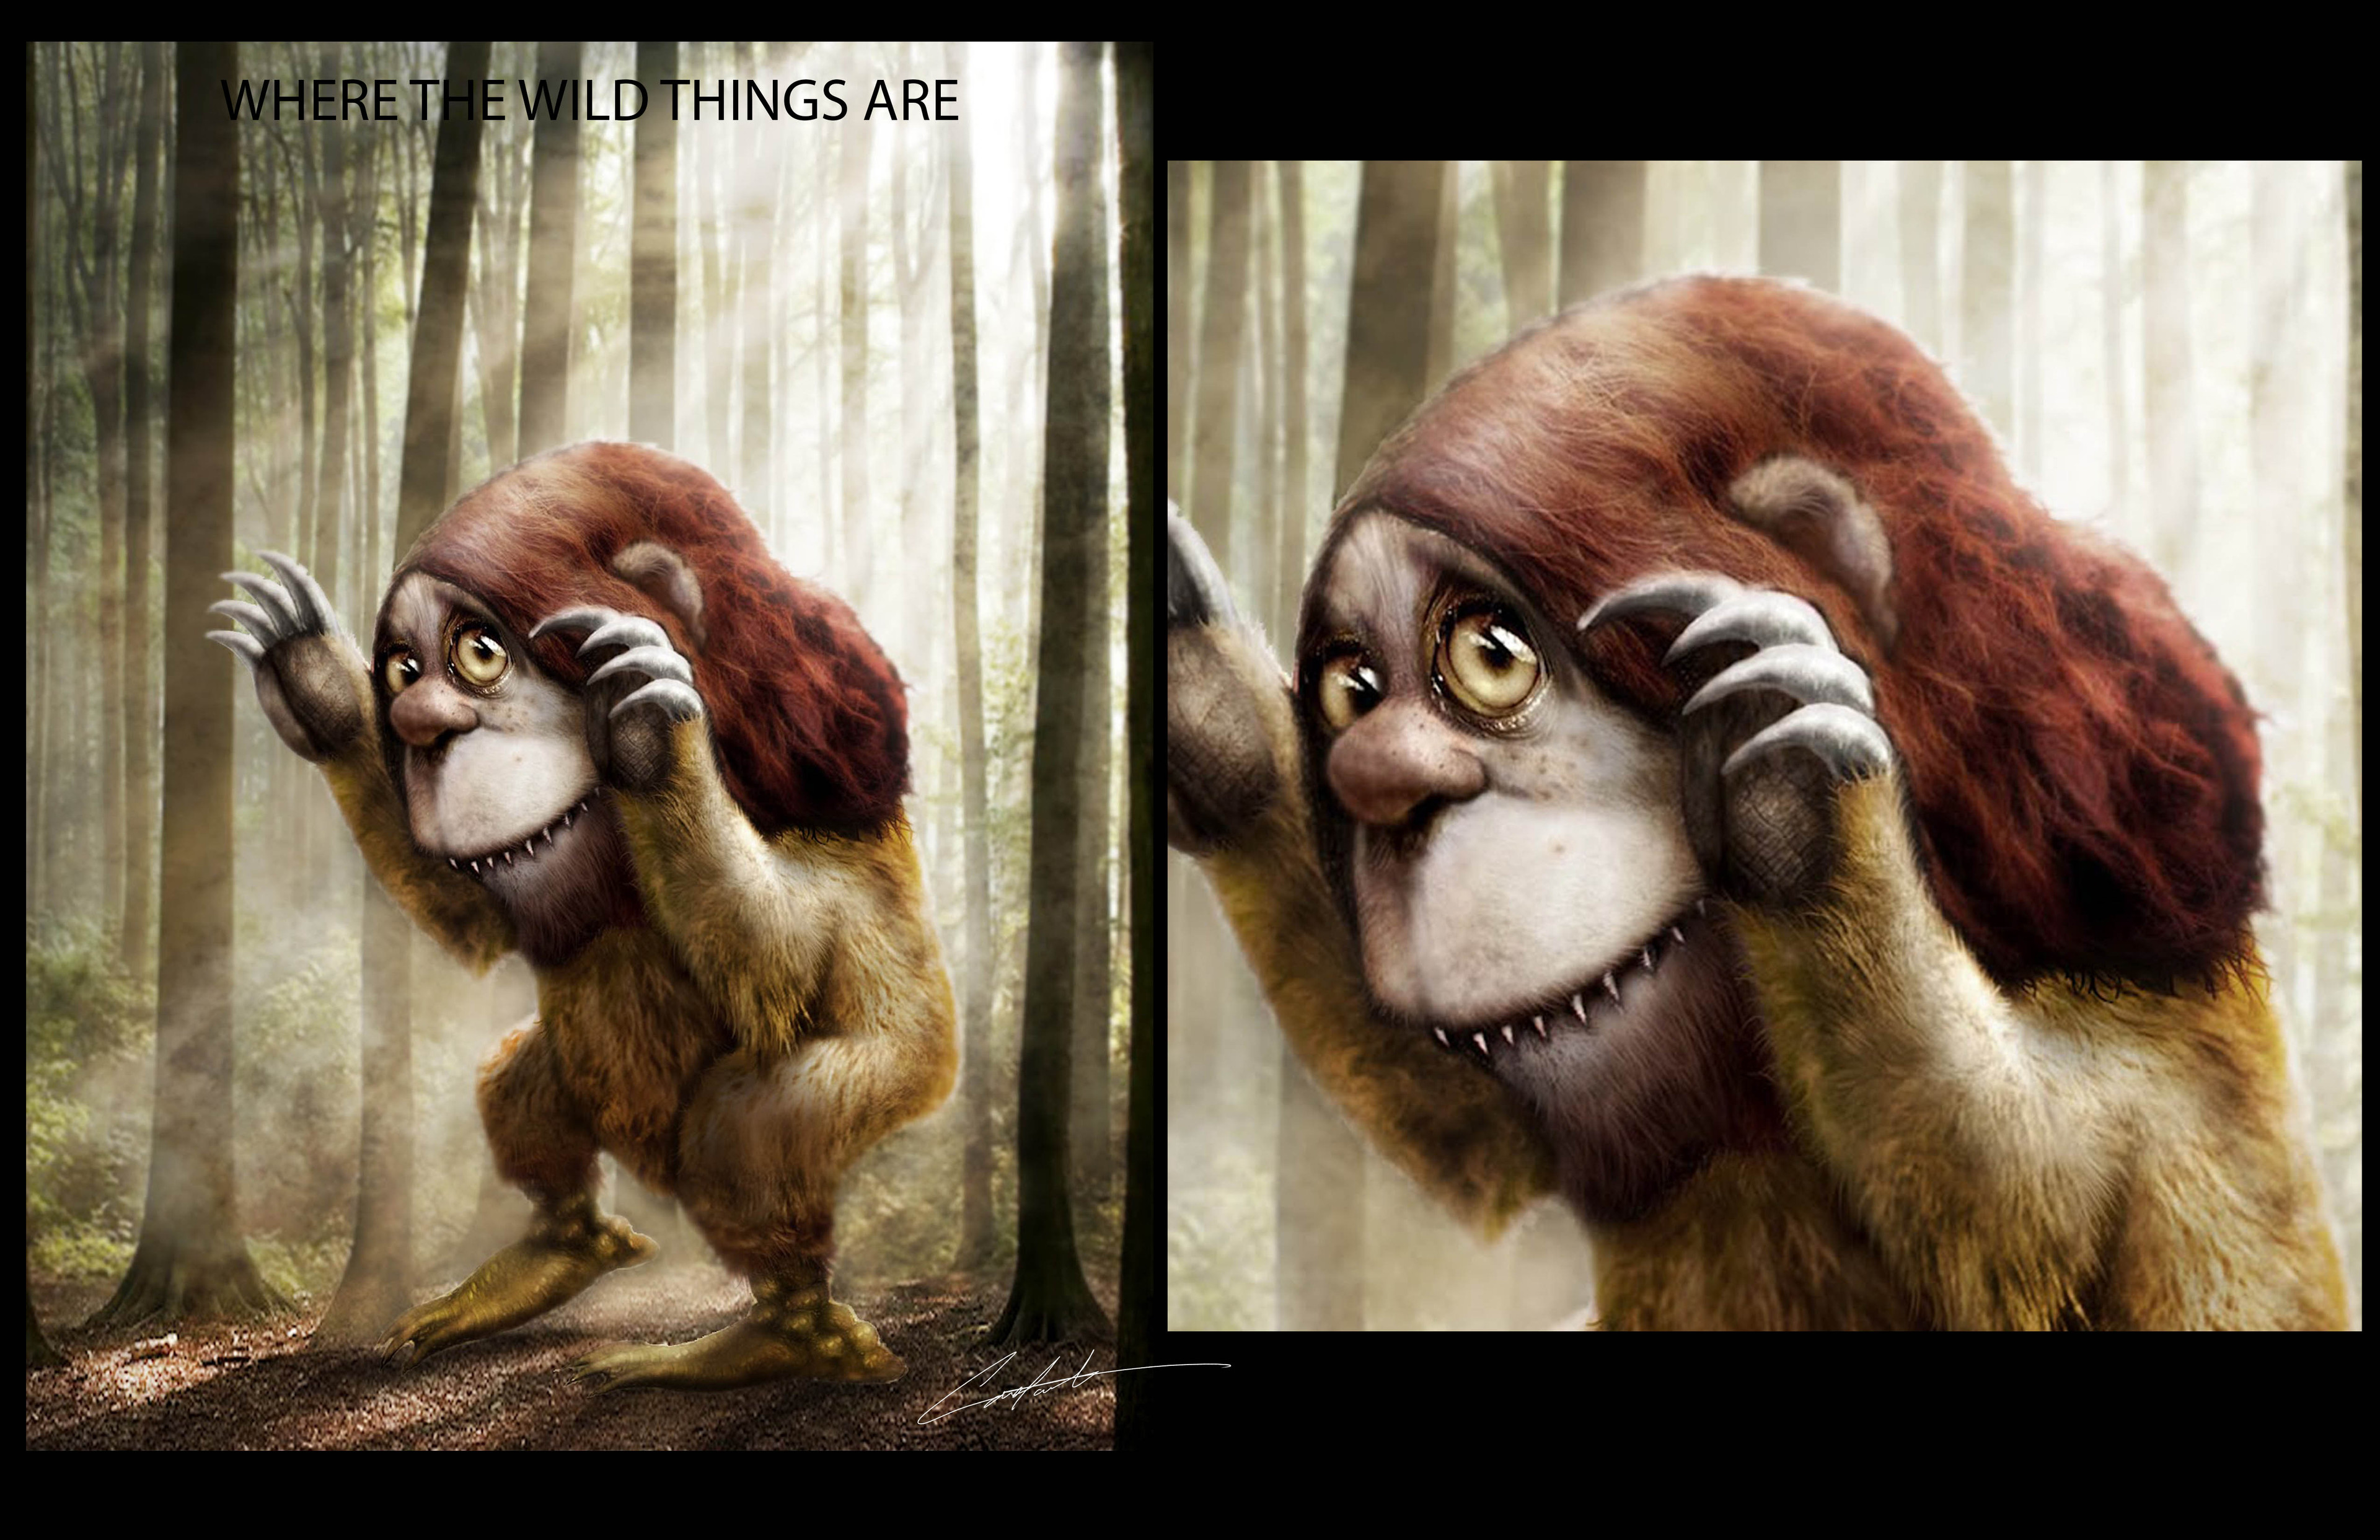 WILD THINGS 05A KW